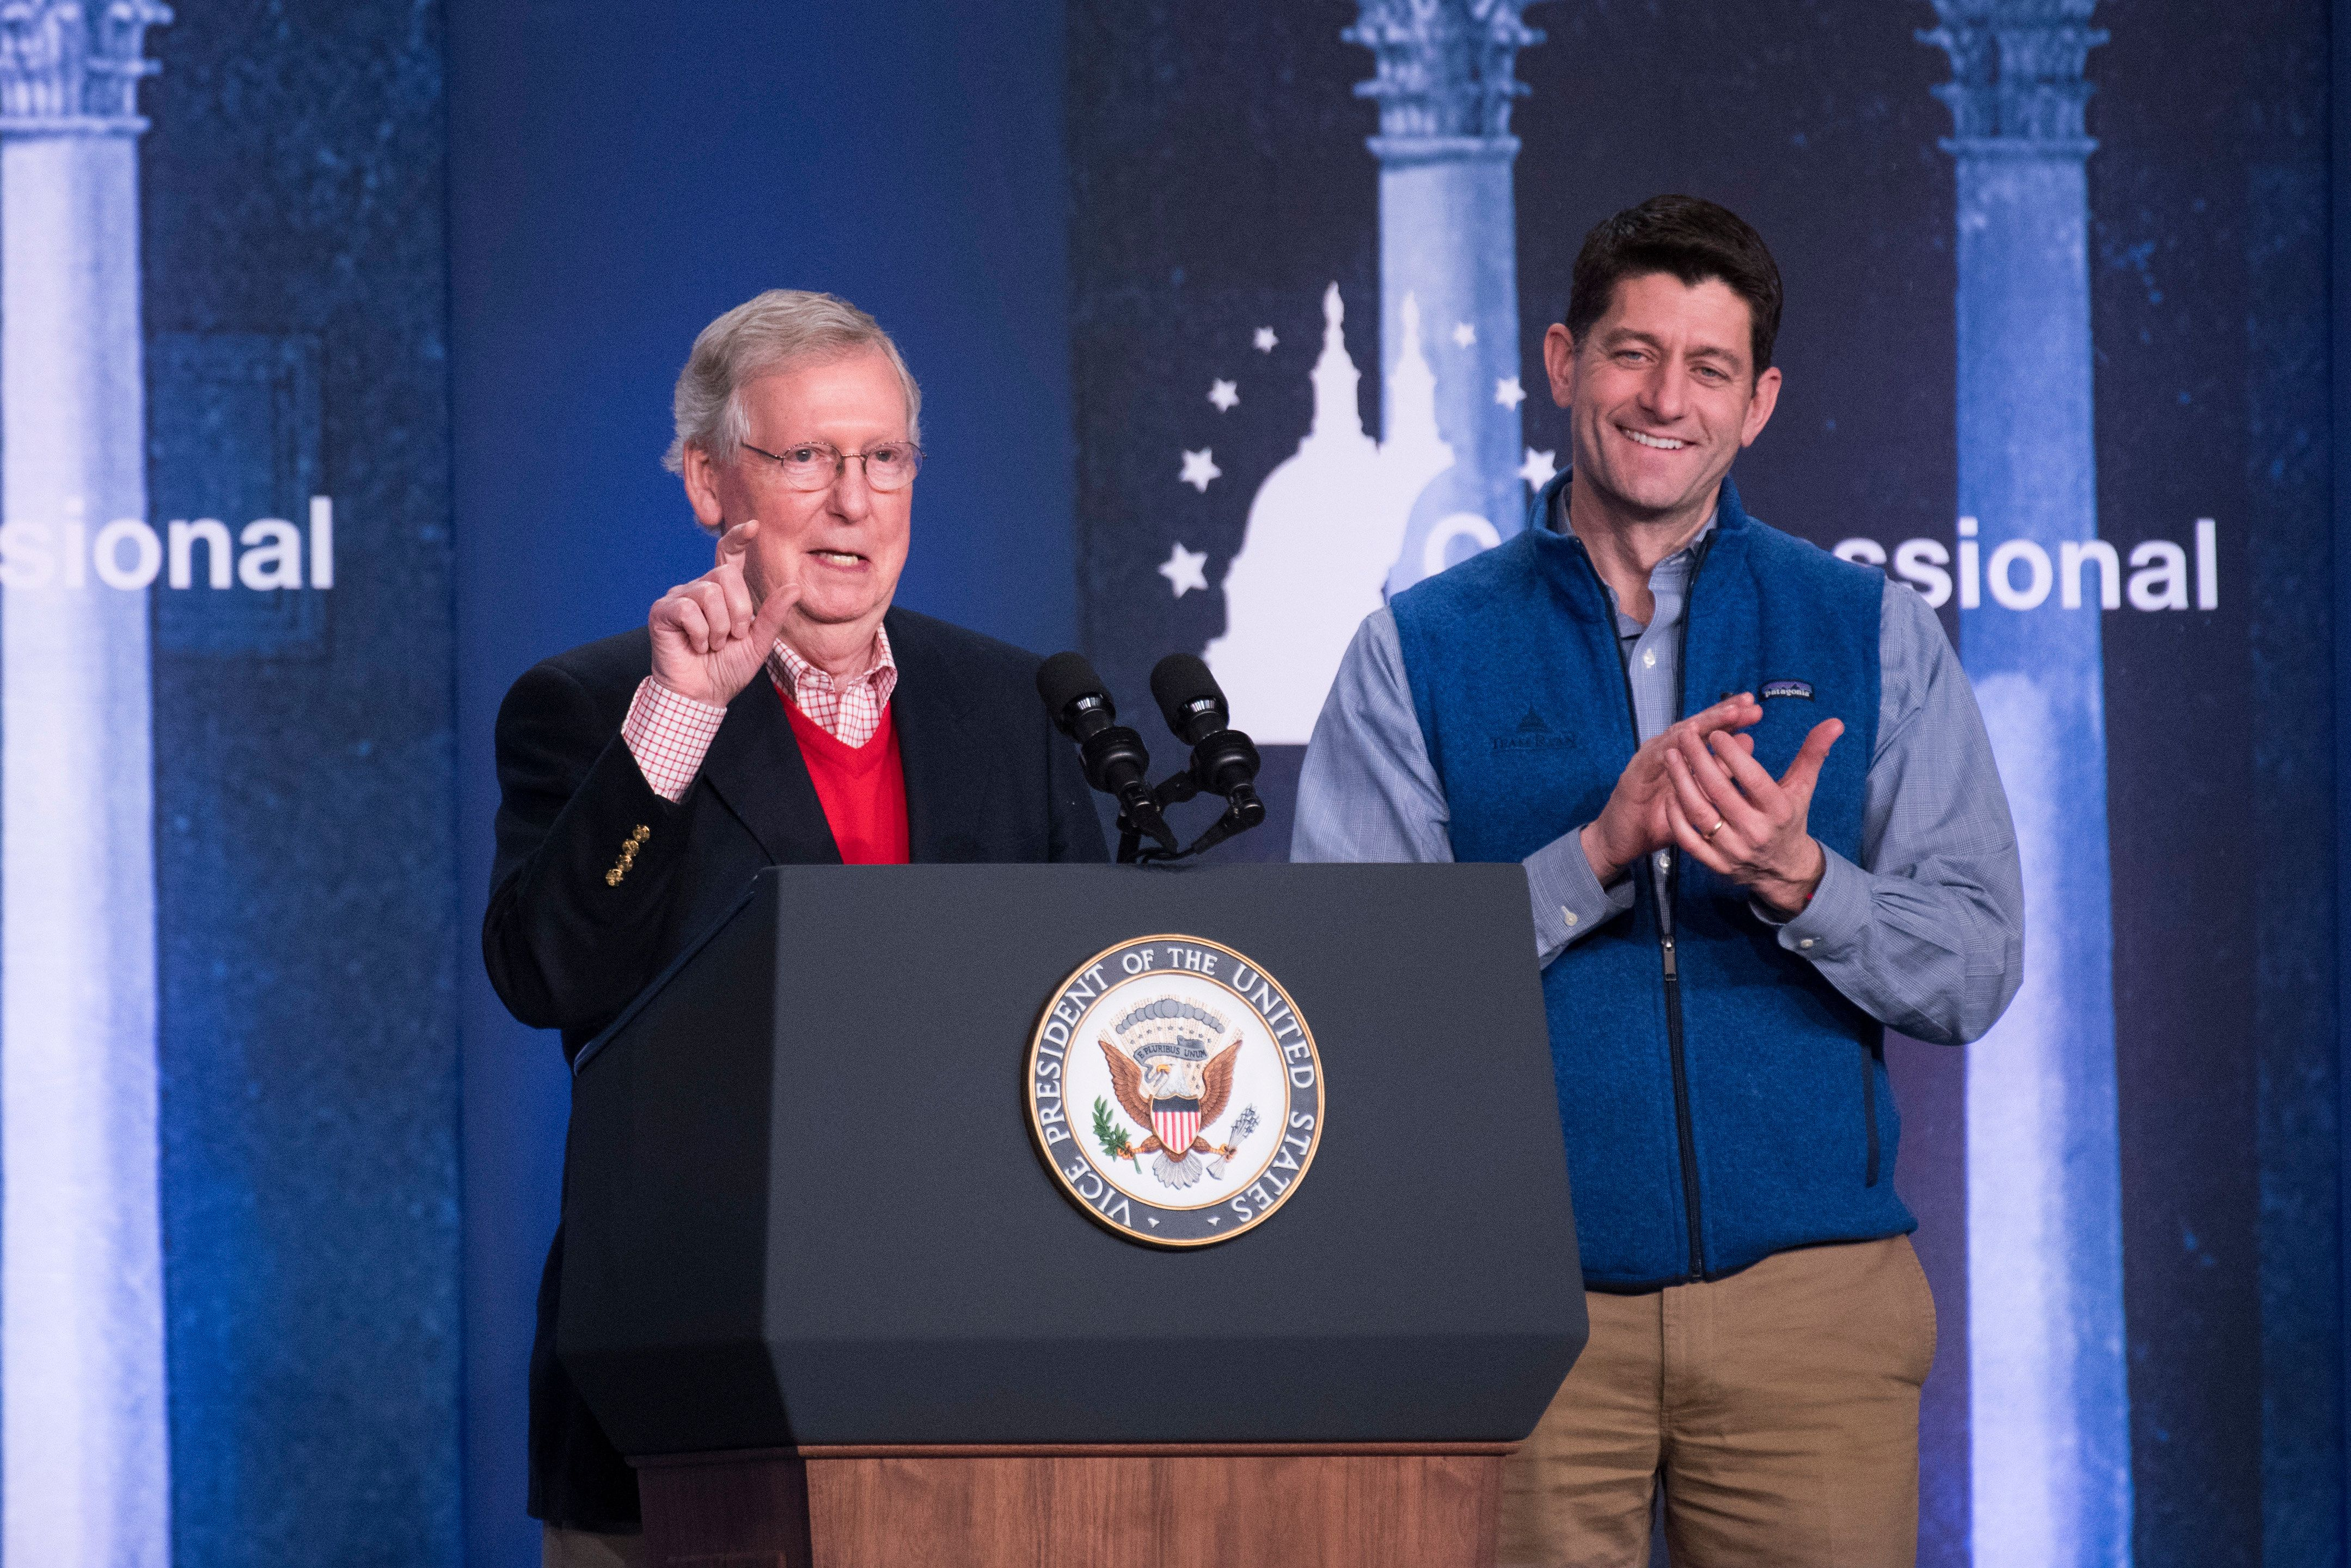 UNITED STATES - JANUARY 31: Senate Majority Leader Mitch McConnell, R-Ky., left, and Speaker Paul Ryan, R-Wis., introduce Vice President Mike Pence during a dinner at the House and Senate Republican retreat at The Greenbrier resort in White Sulphur Springs, W.Va., on January 31, 2018. (Photo By Tom Williams/CQ Roll Call)